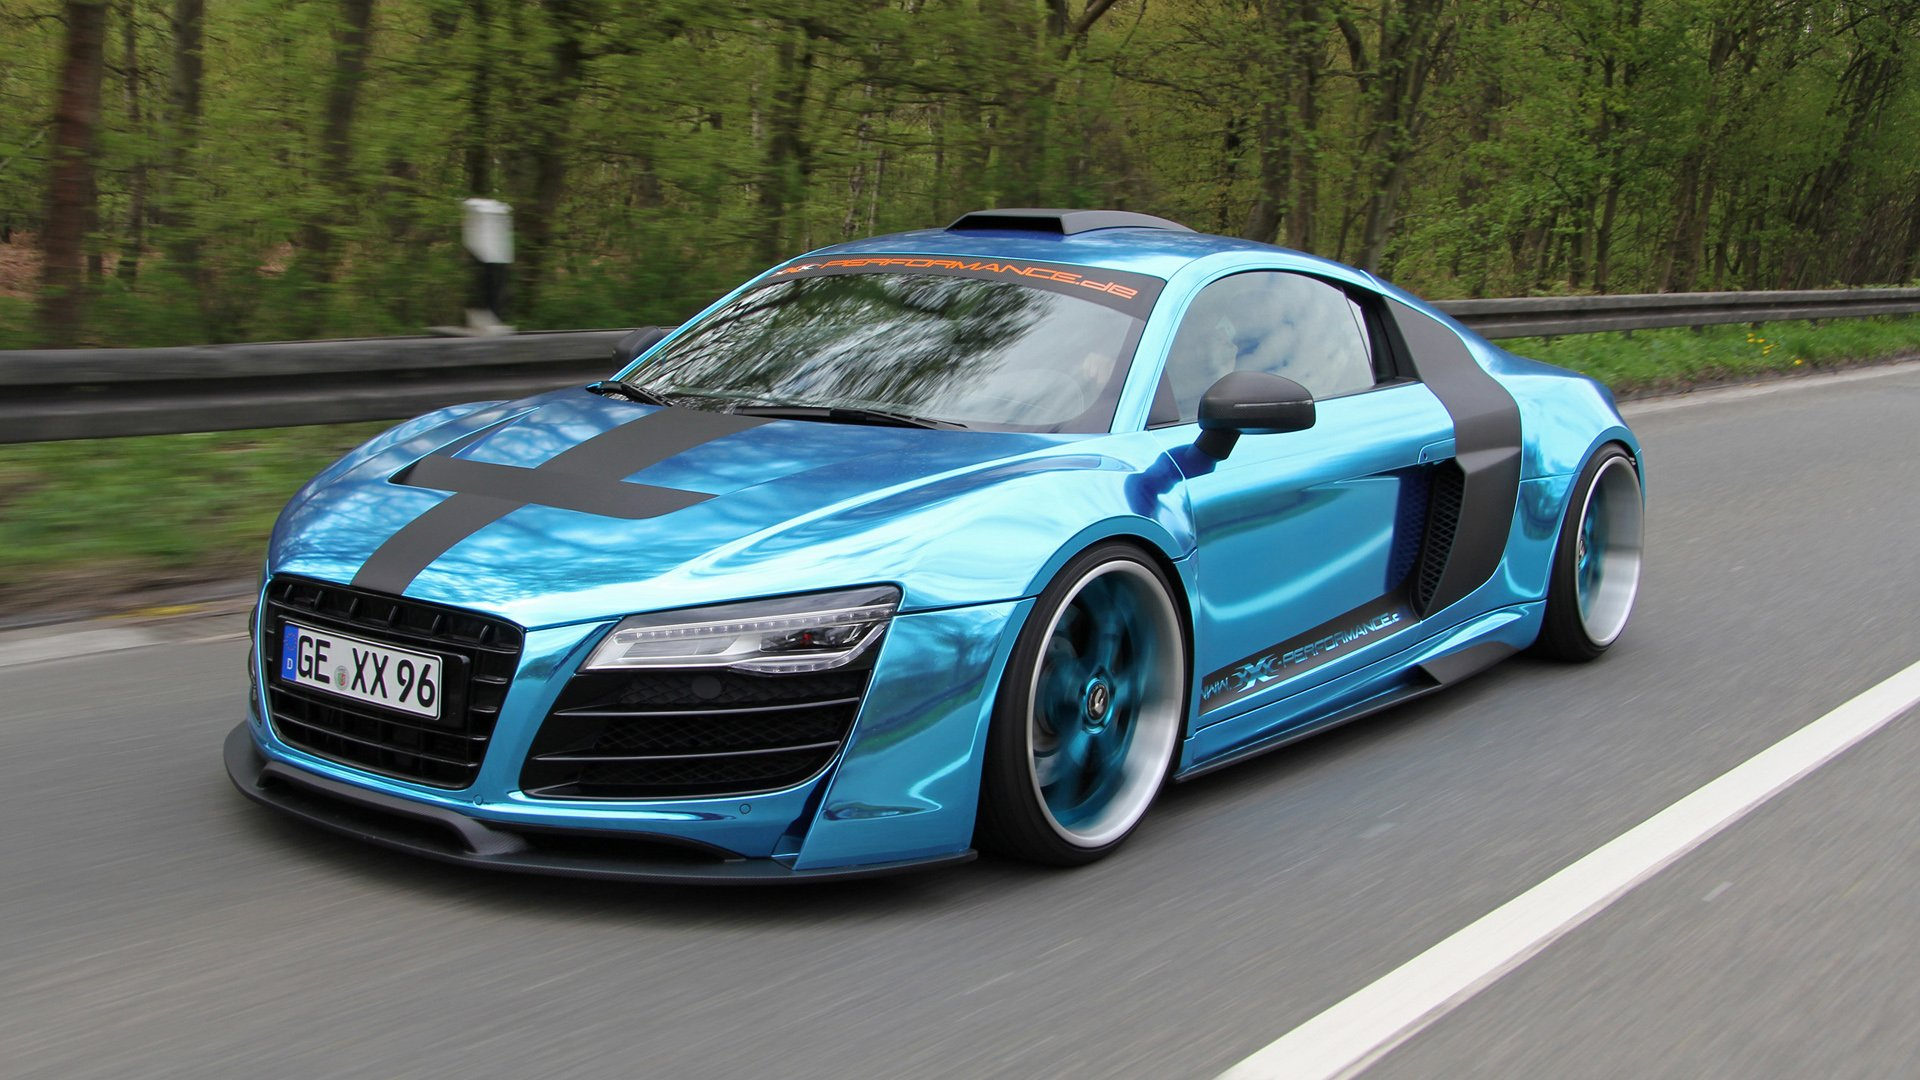 2013 Audi R8 V10 by XXX Performance Wallpaper HD Car Wallpapers 1920x1080